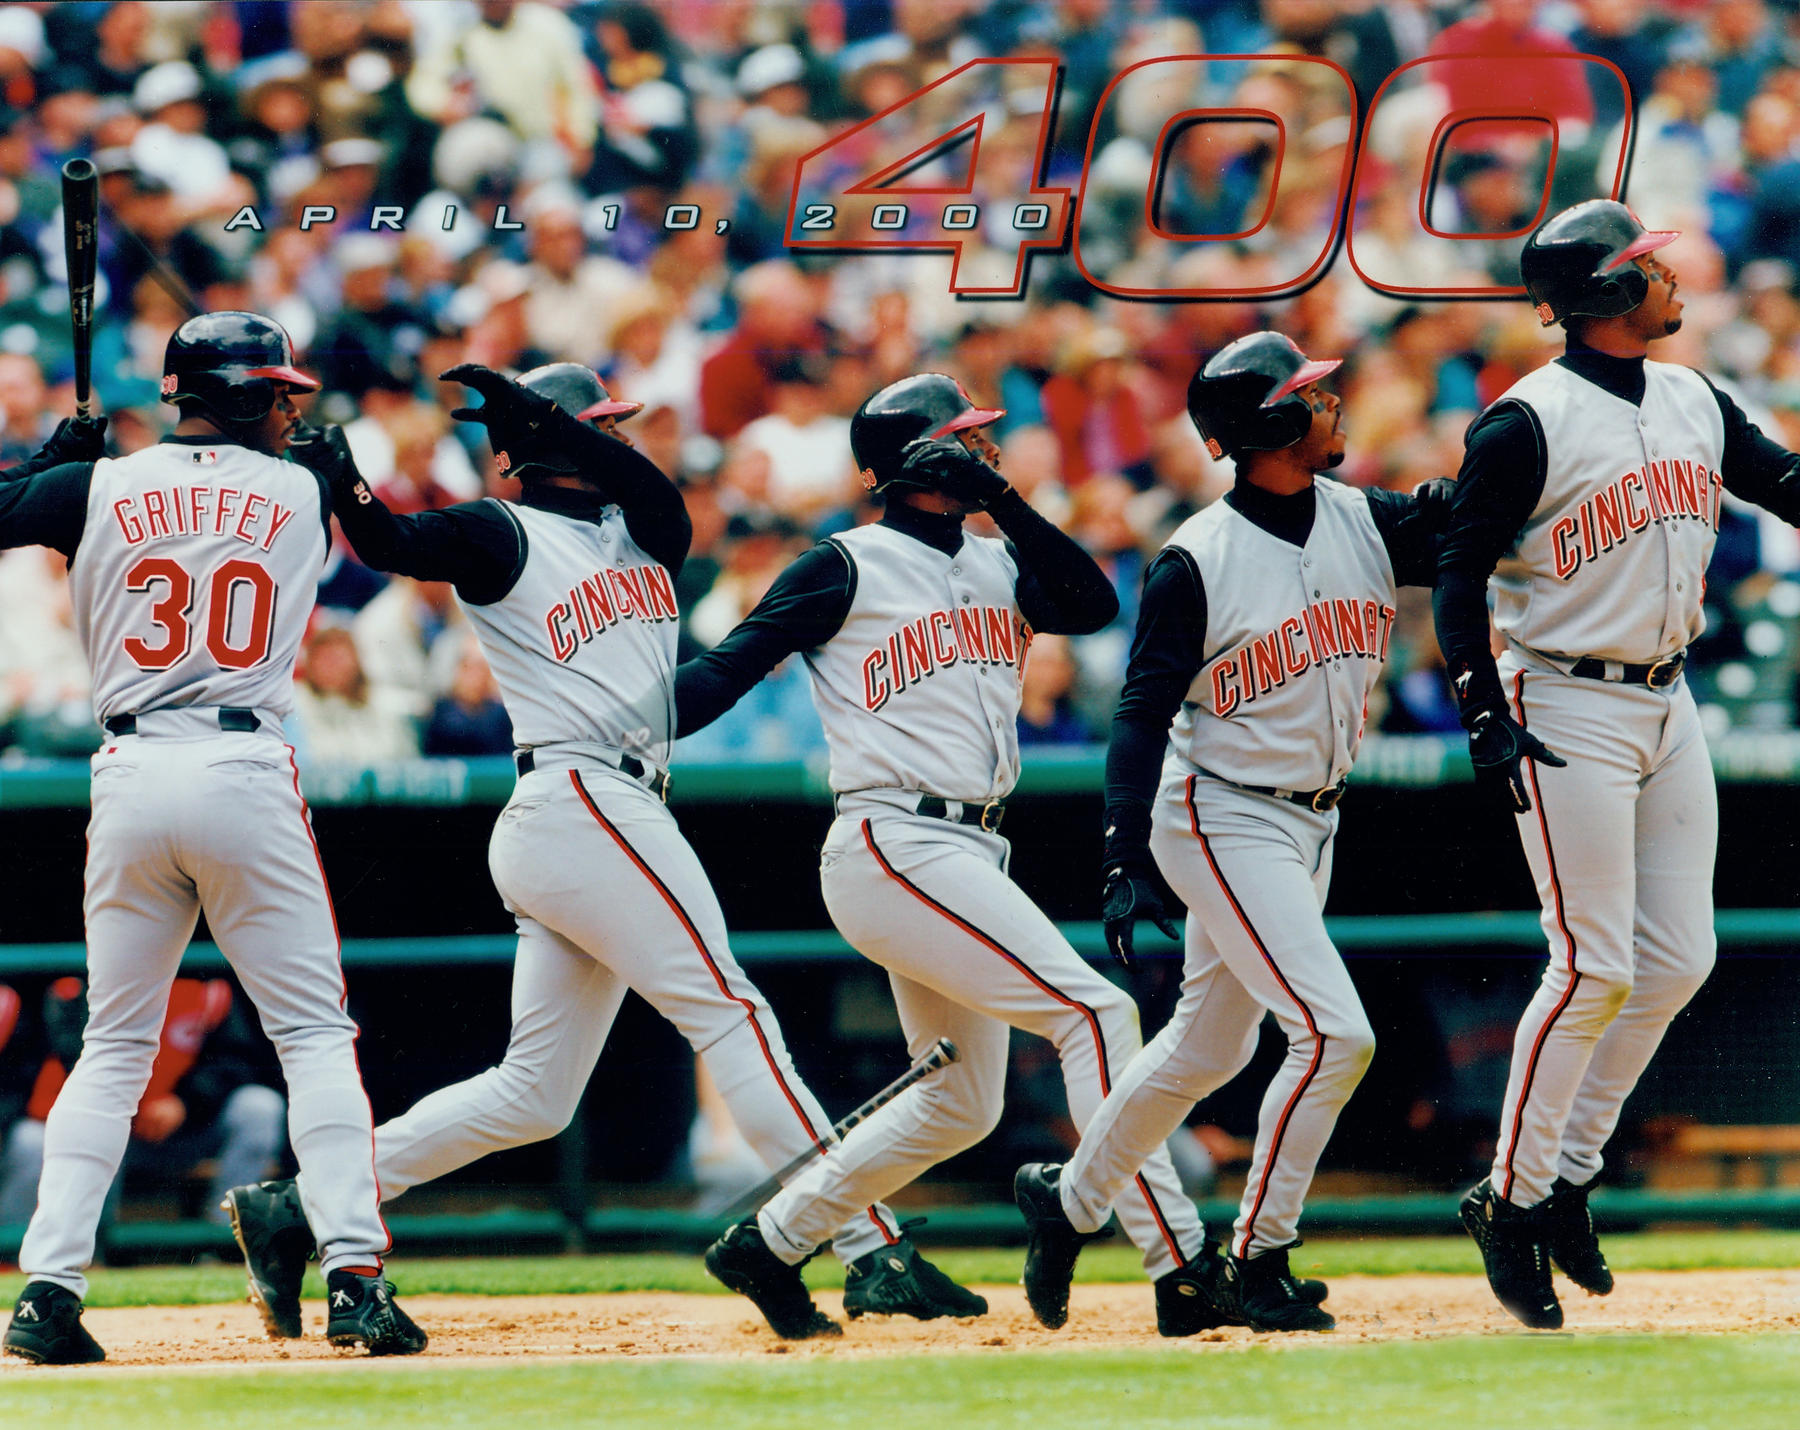 Hitting sequence of Ken Griffey Jr.'s 400th career home run. This was accomplished on April 10, 2000. BL-4246.2000 (PhotoFile / National Baseball Hall of Fame Library)